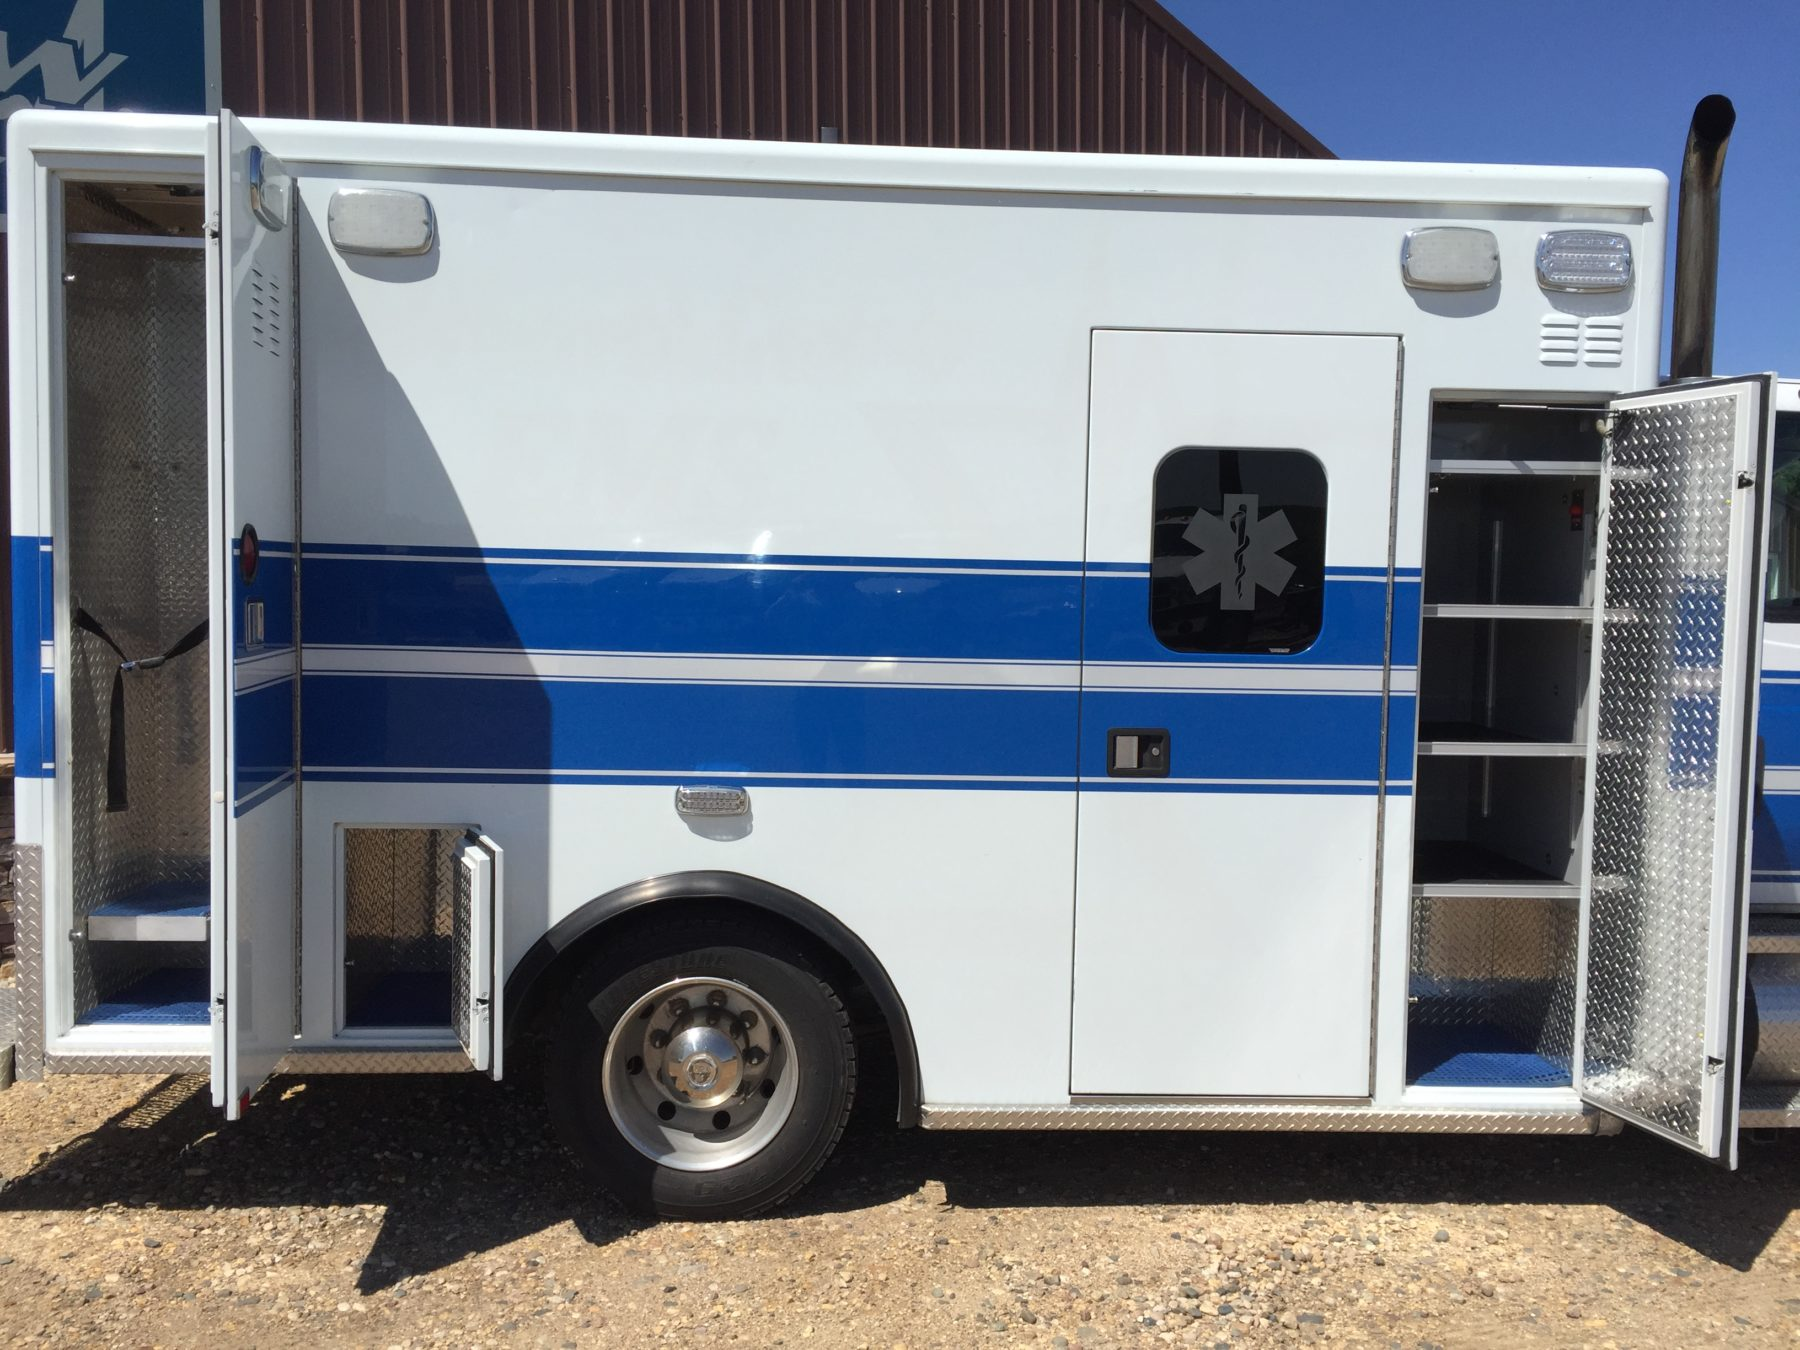 2011 International 4300 Heavy Duty Ambulance For Sale – Picture 5